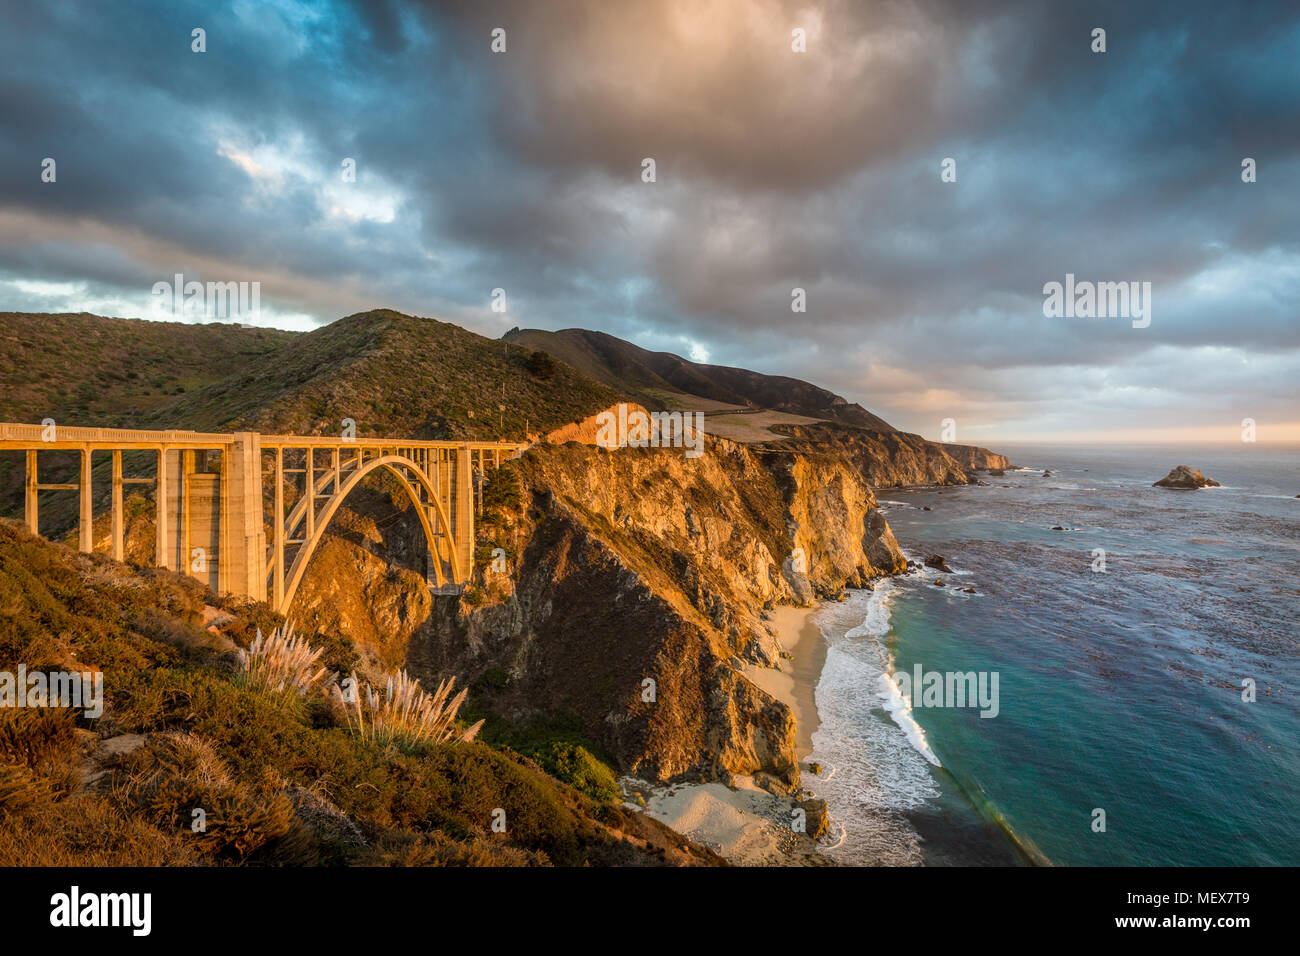 Scenic panoramic view of historic Bixby Creek Bridge along world famous Highway 1 in beautiful golden evening light at sunset with dramatic cloudscape - Stock Image